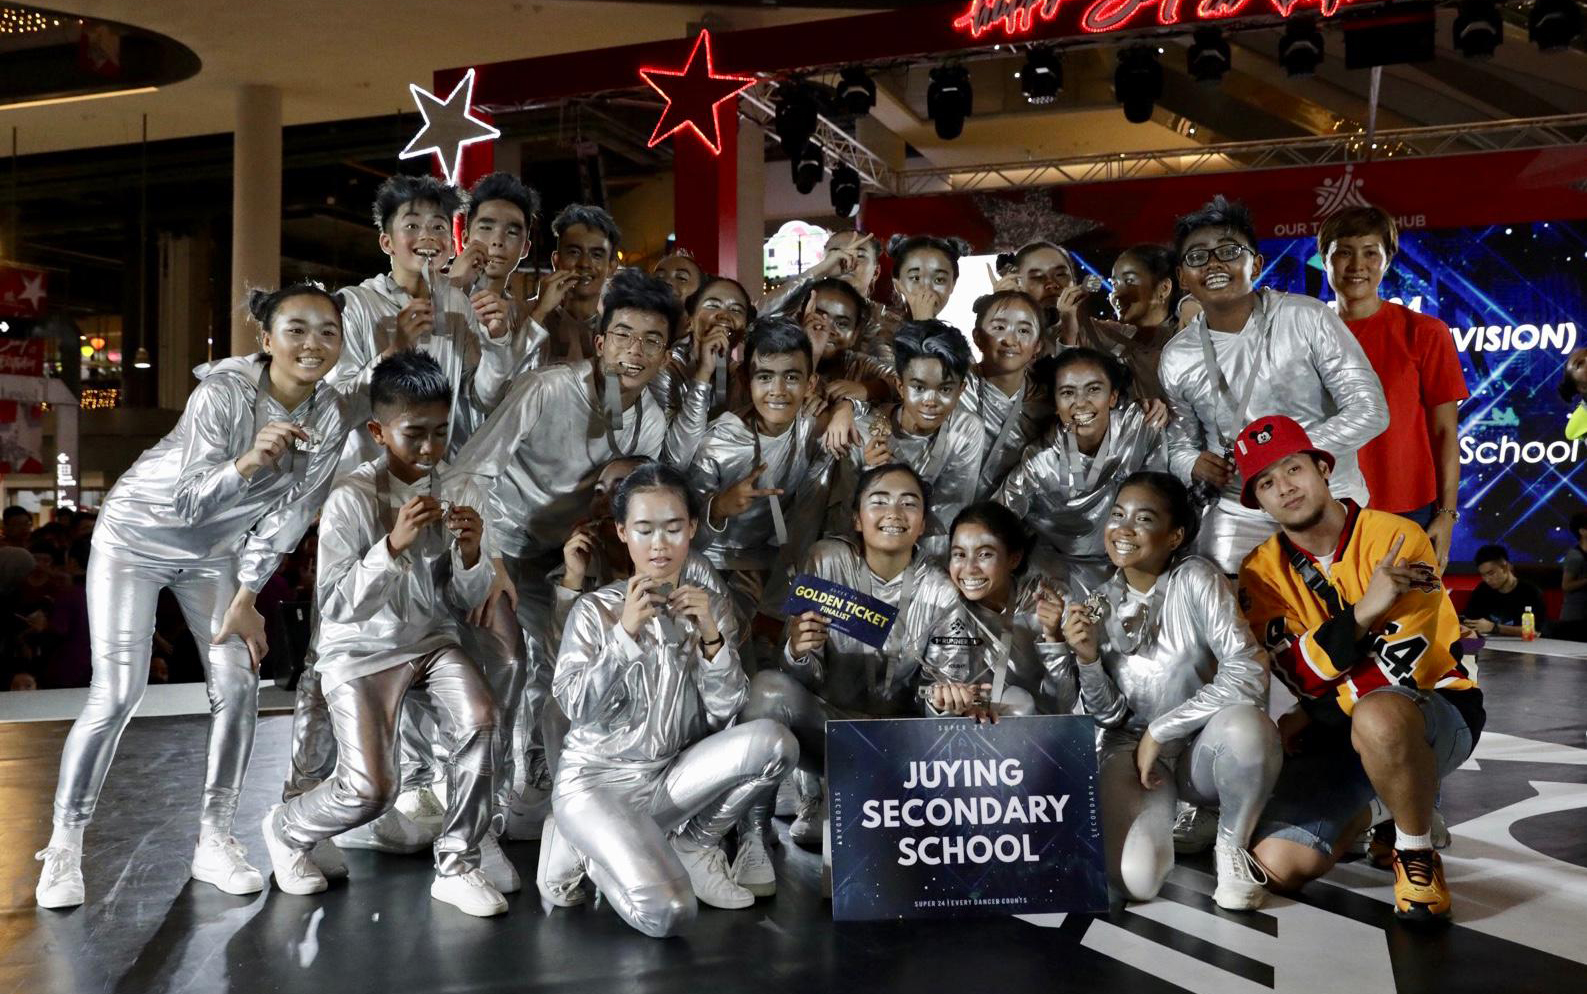 1ST RUNNER UP  - Juying Secondary School